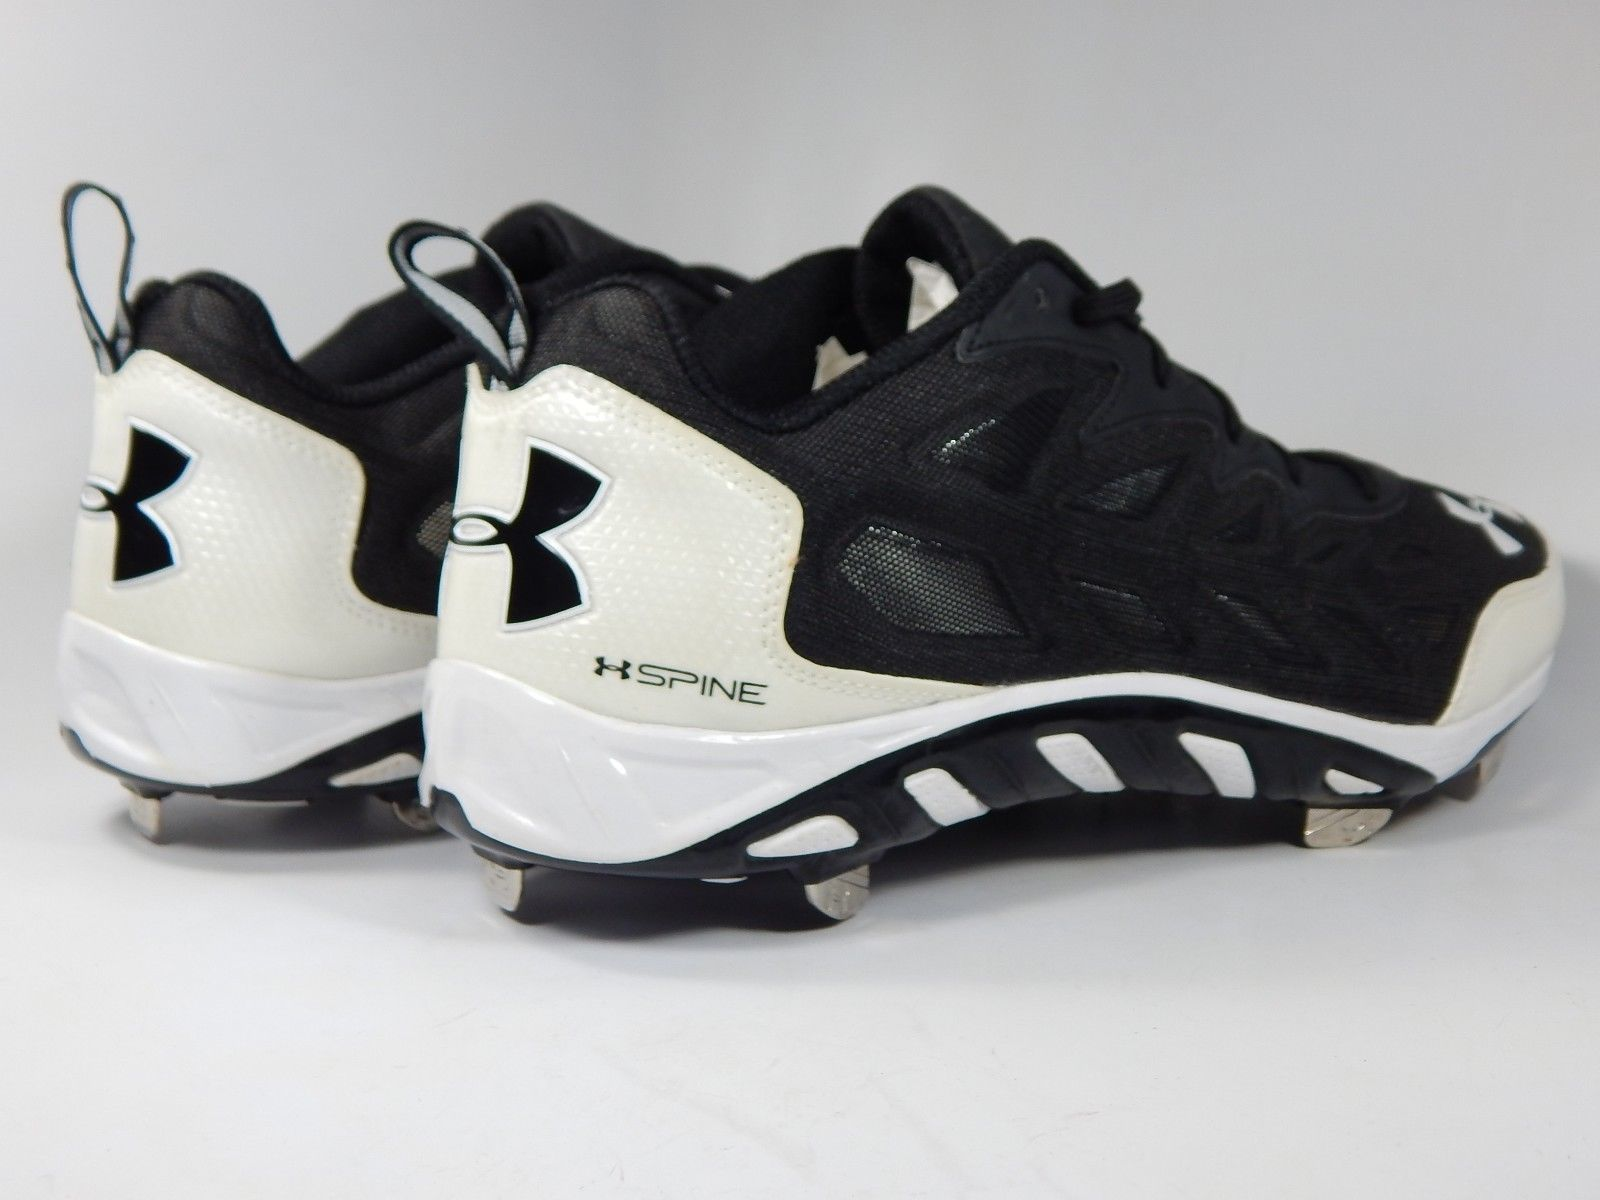 Under Armour Spine Low Top Size 13 M EU 47.5 Metal Baseball Cleats 1240624-011